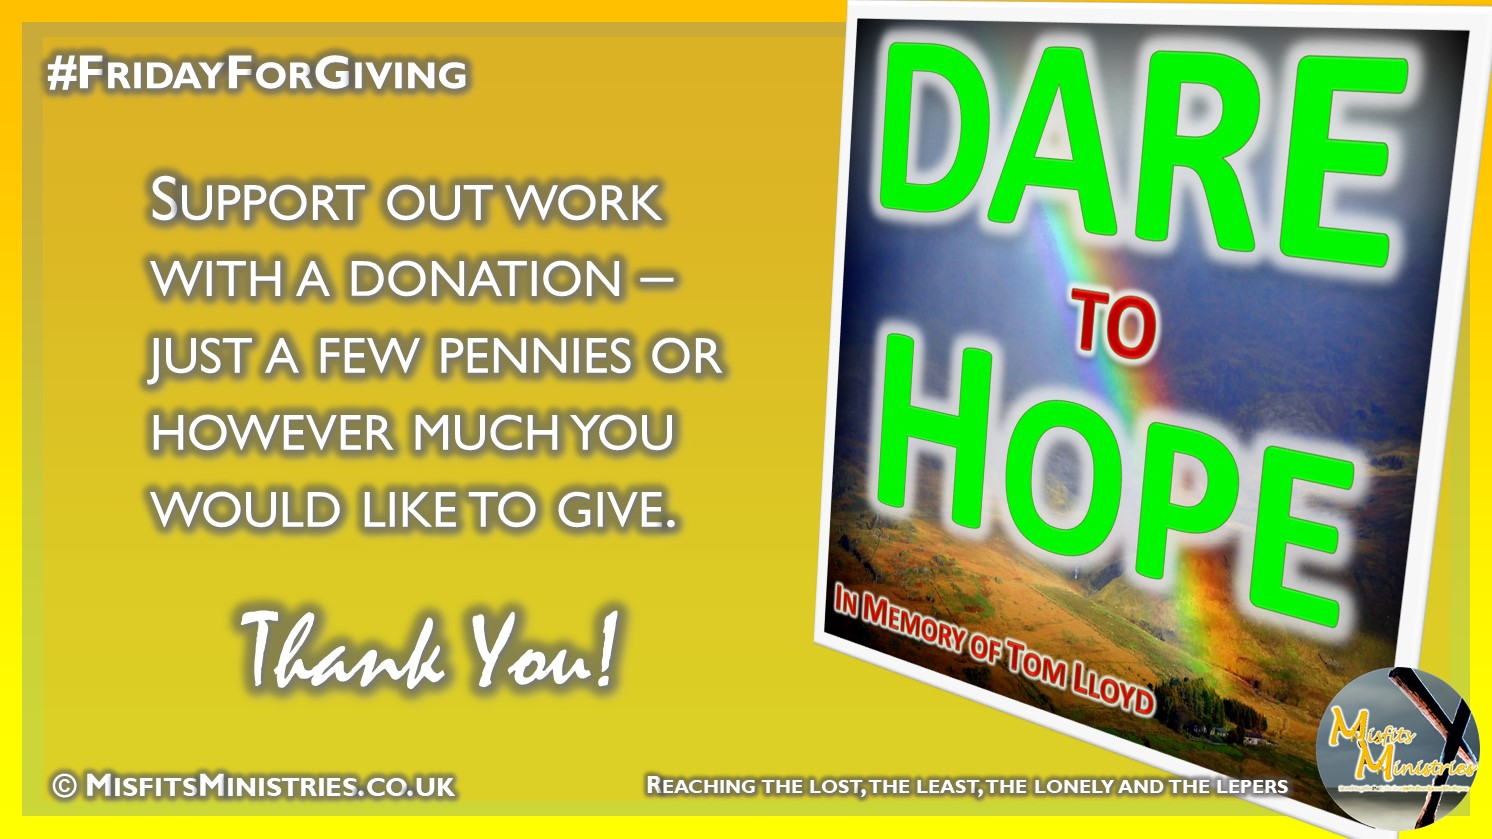 Friday For Giving - DARE to Hope